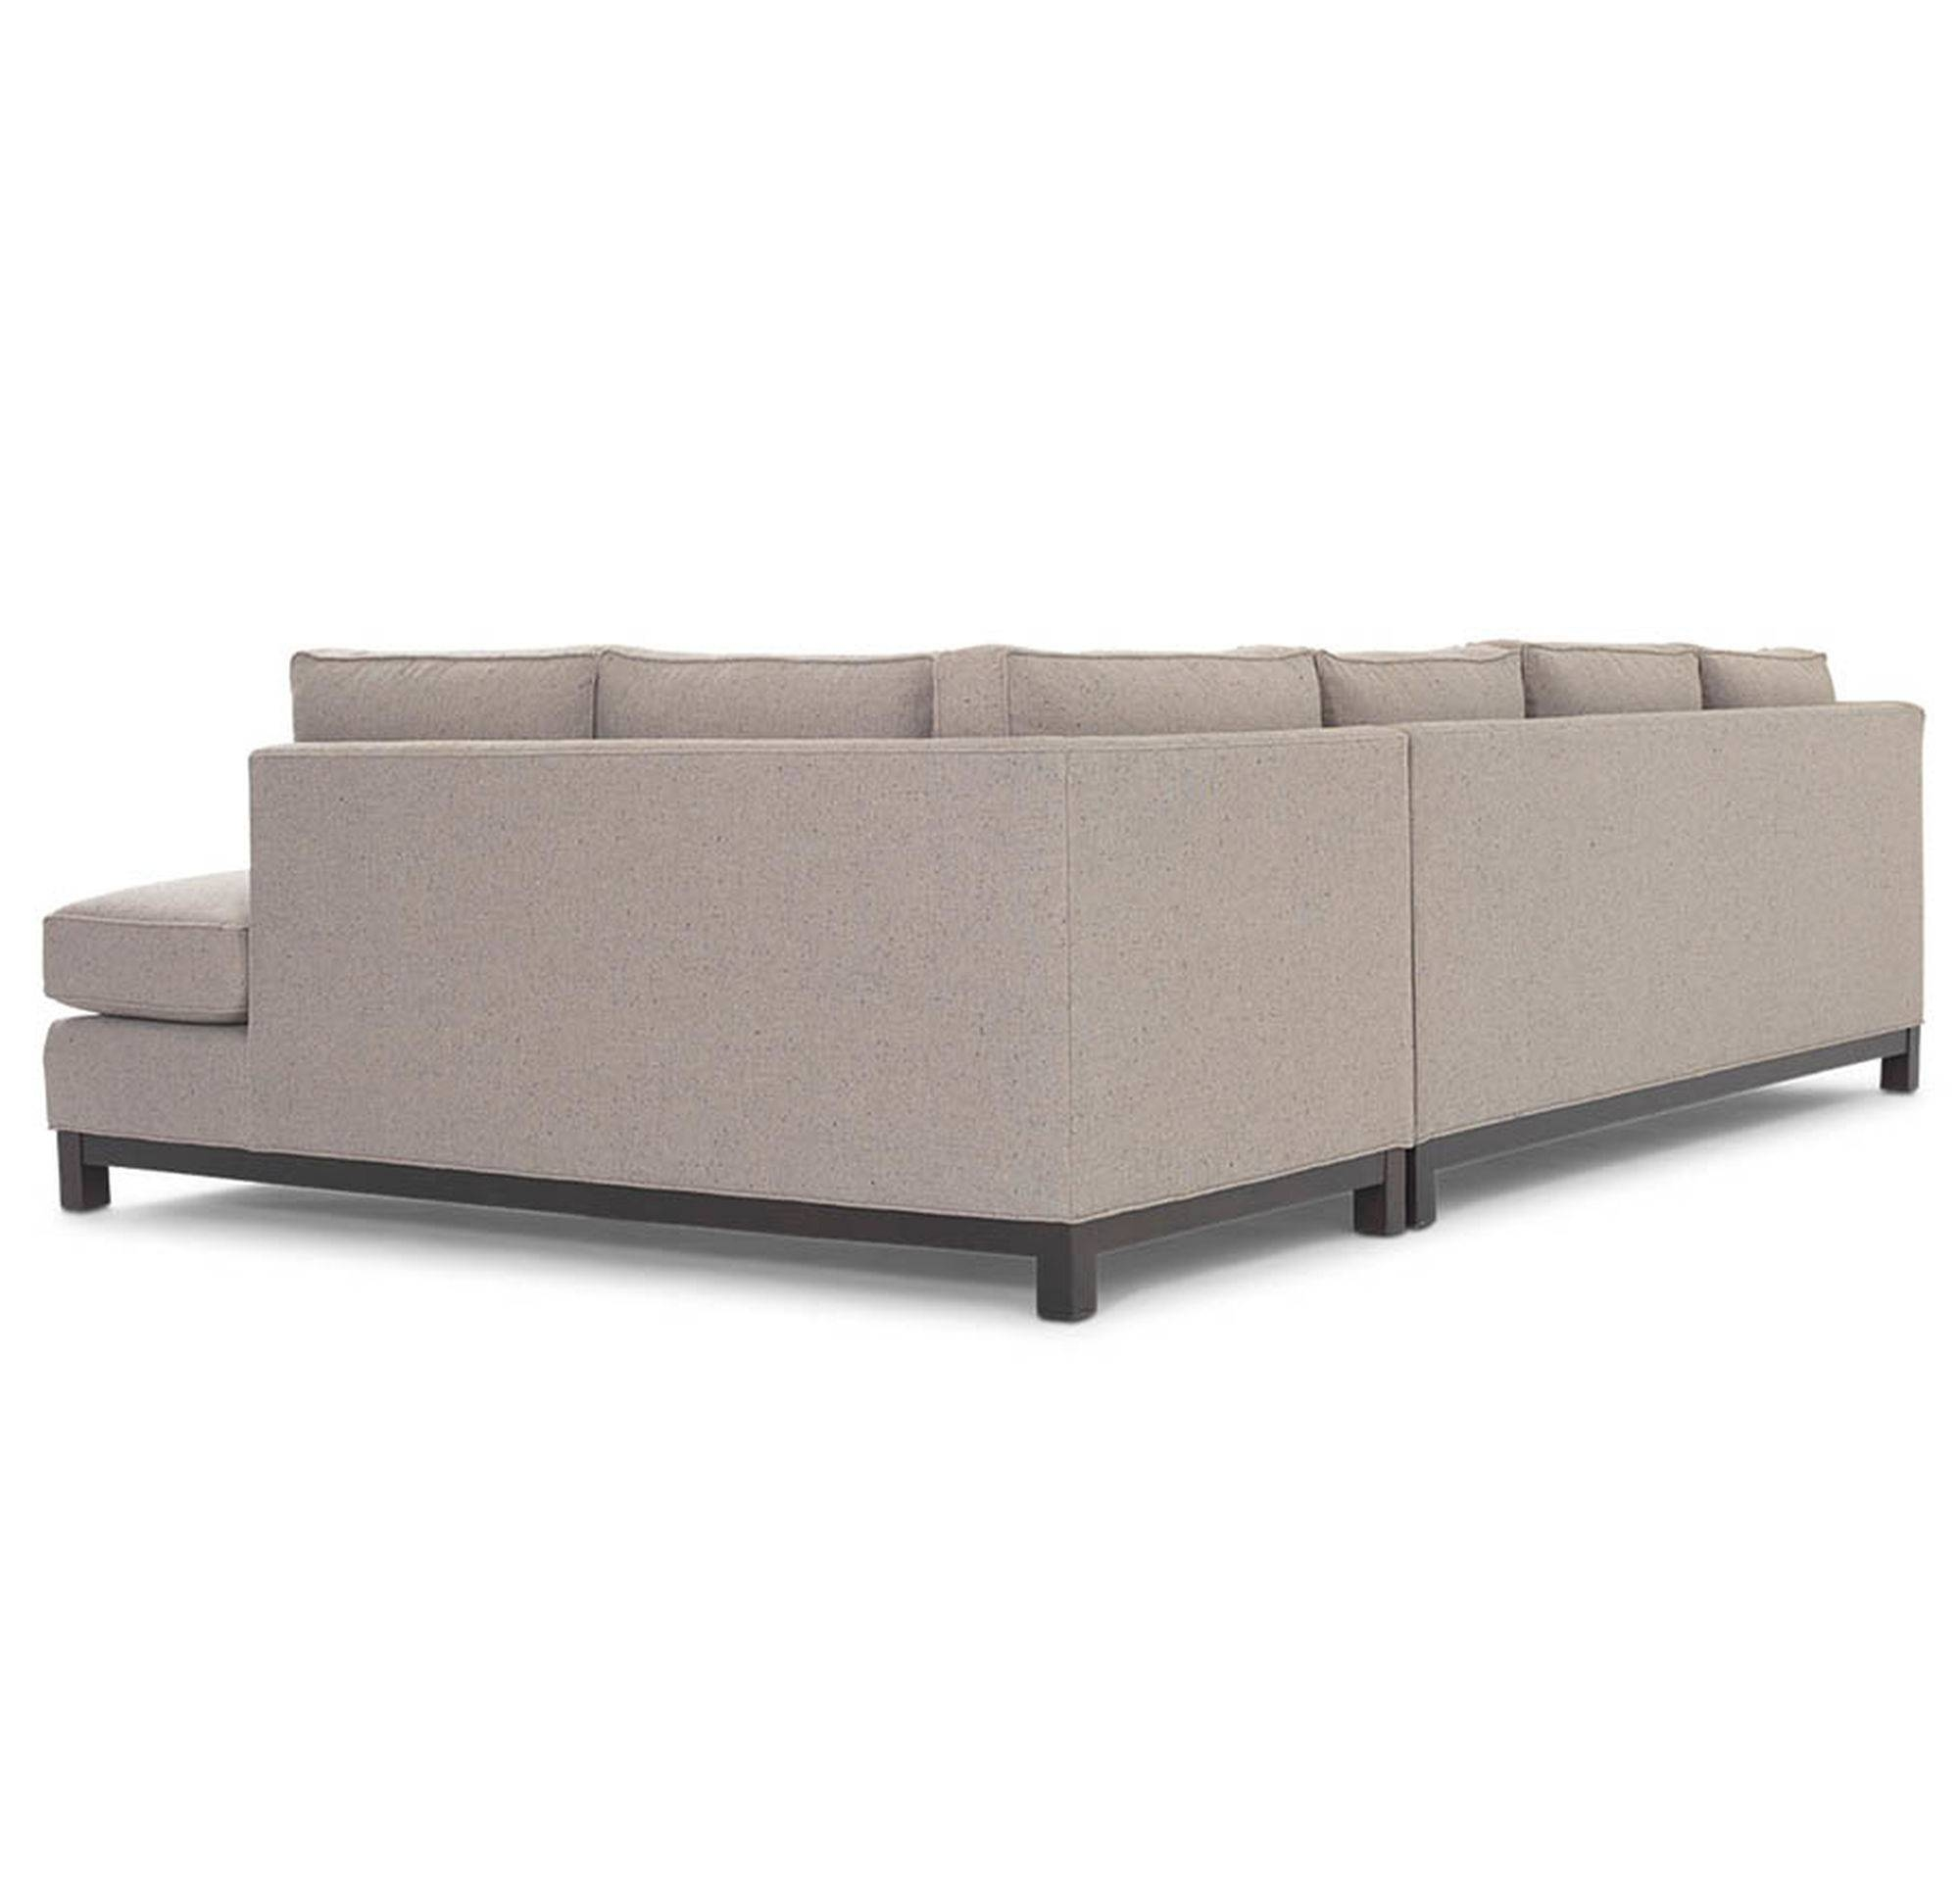 Best Mitchell Gold Clifton Sectional Sofa 73 For Your Condo within Mitchell Gold Clifton Sectional Sofas (Image 3 of 15)